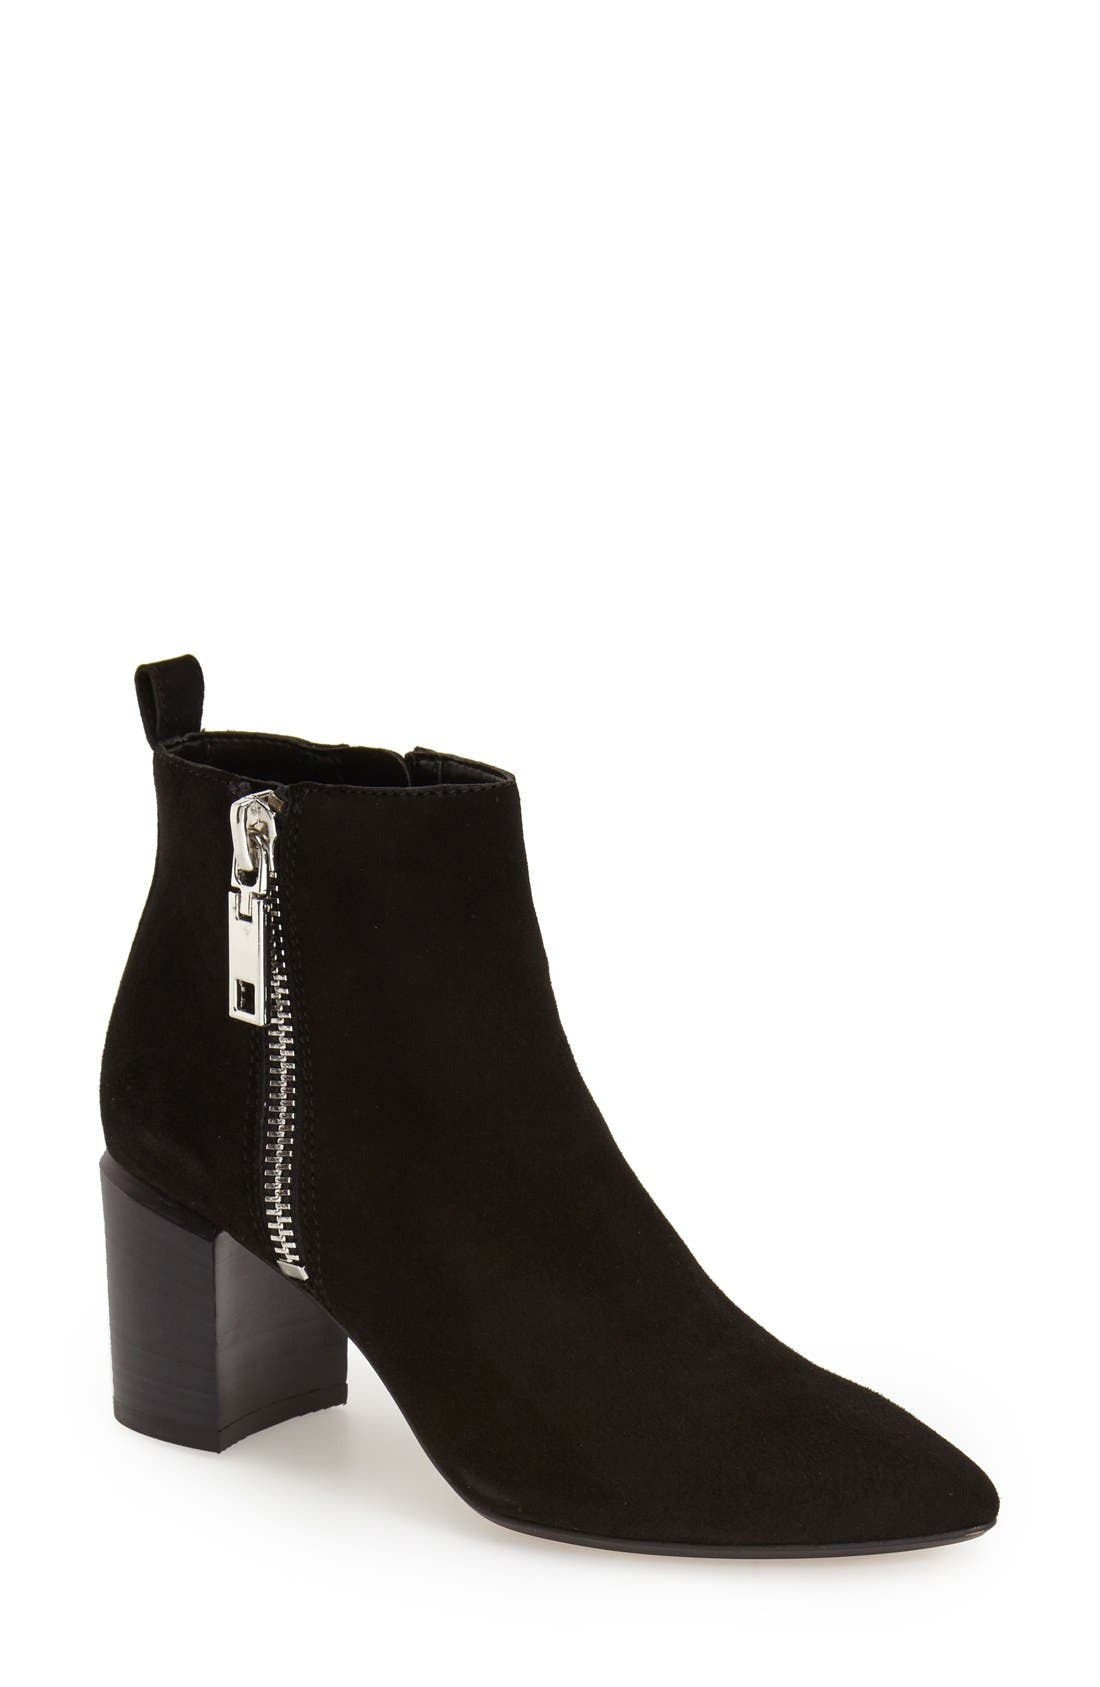 Alternate Image 1 Selected - DolceVita 'Ginnee' Pointy Toe Ankle Bootie(Women)